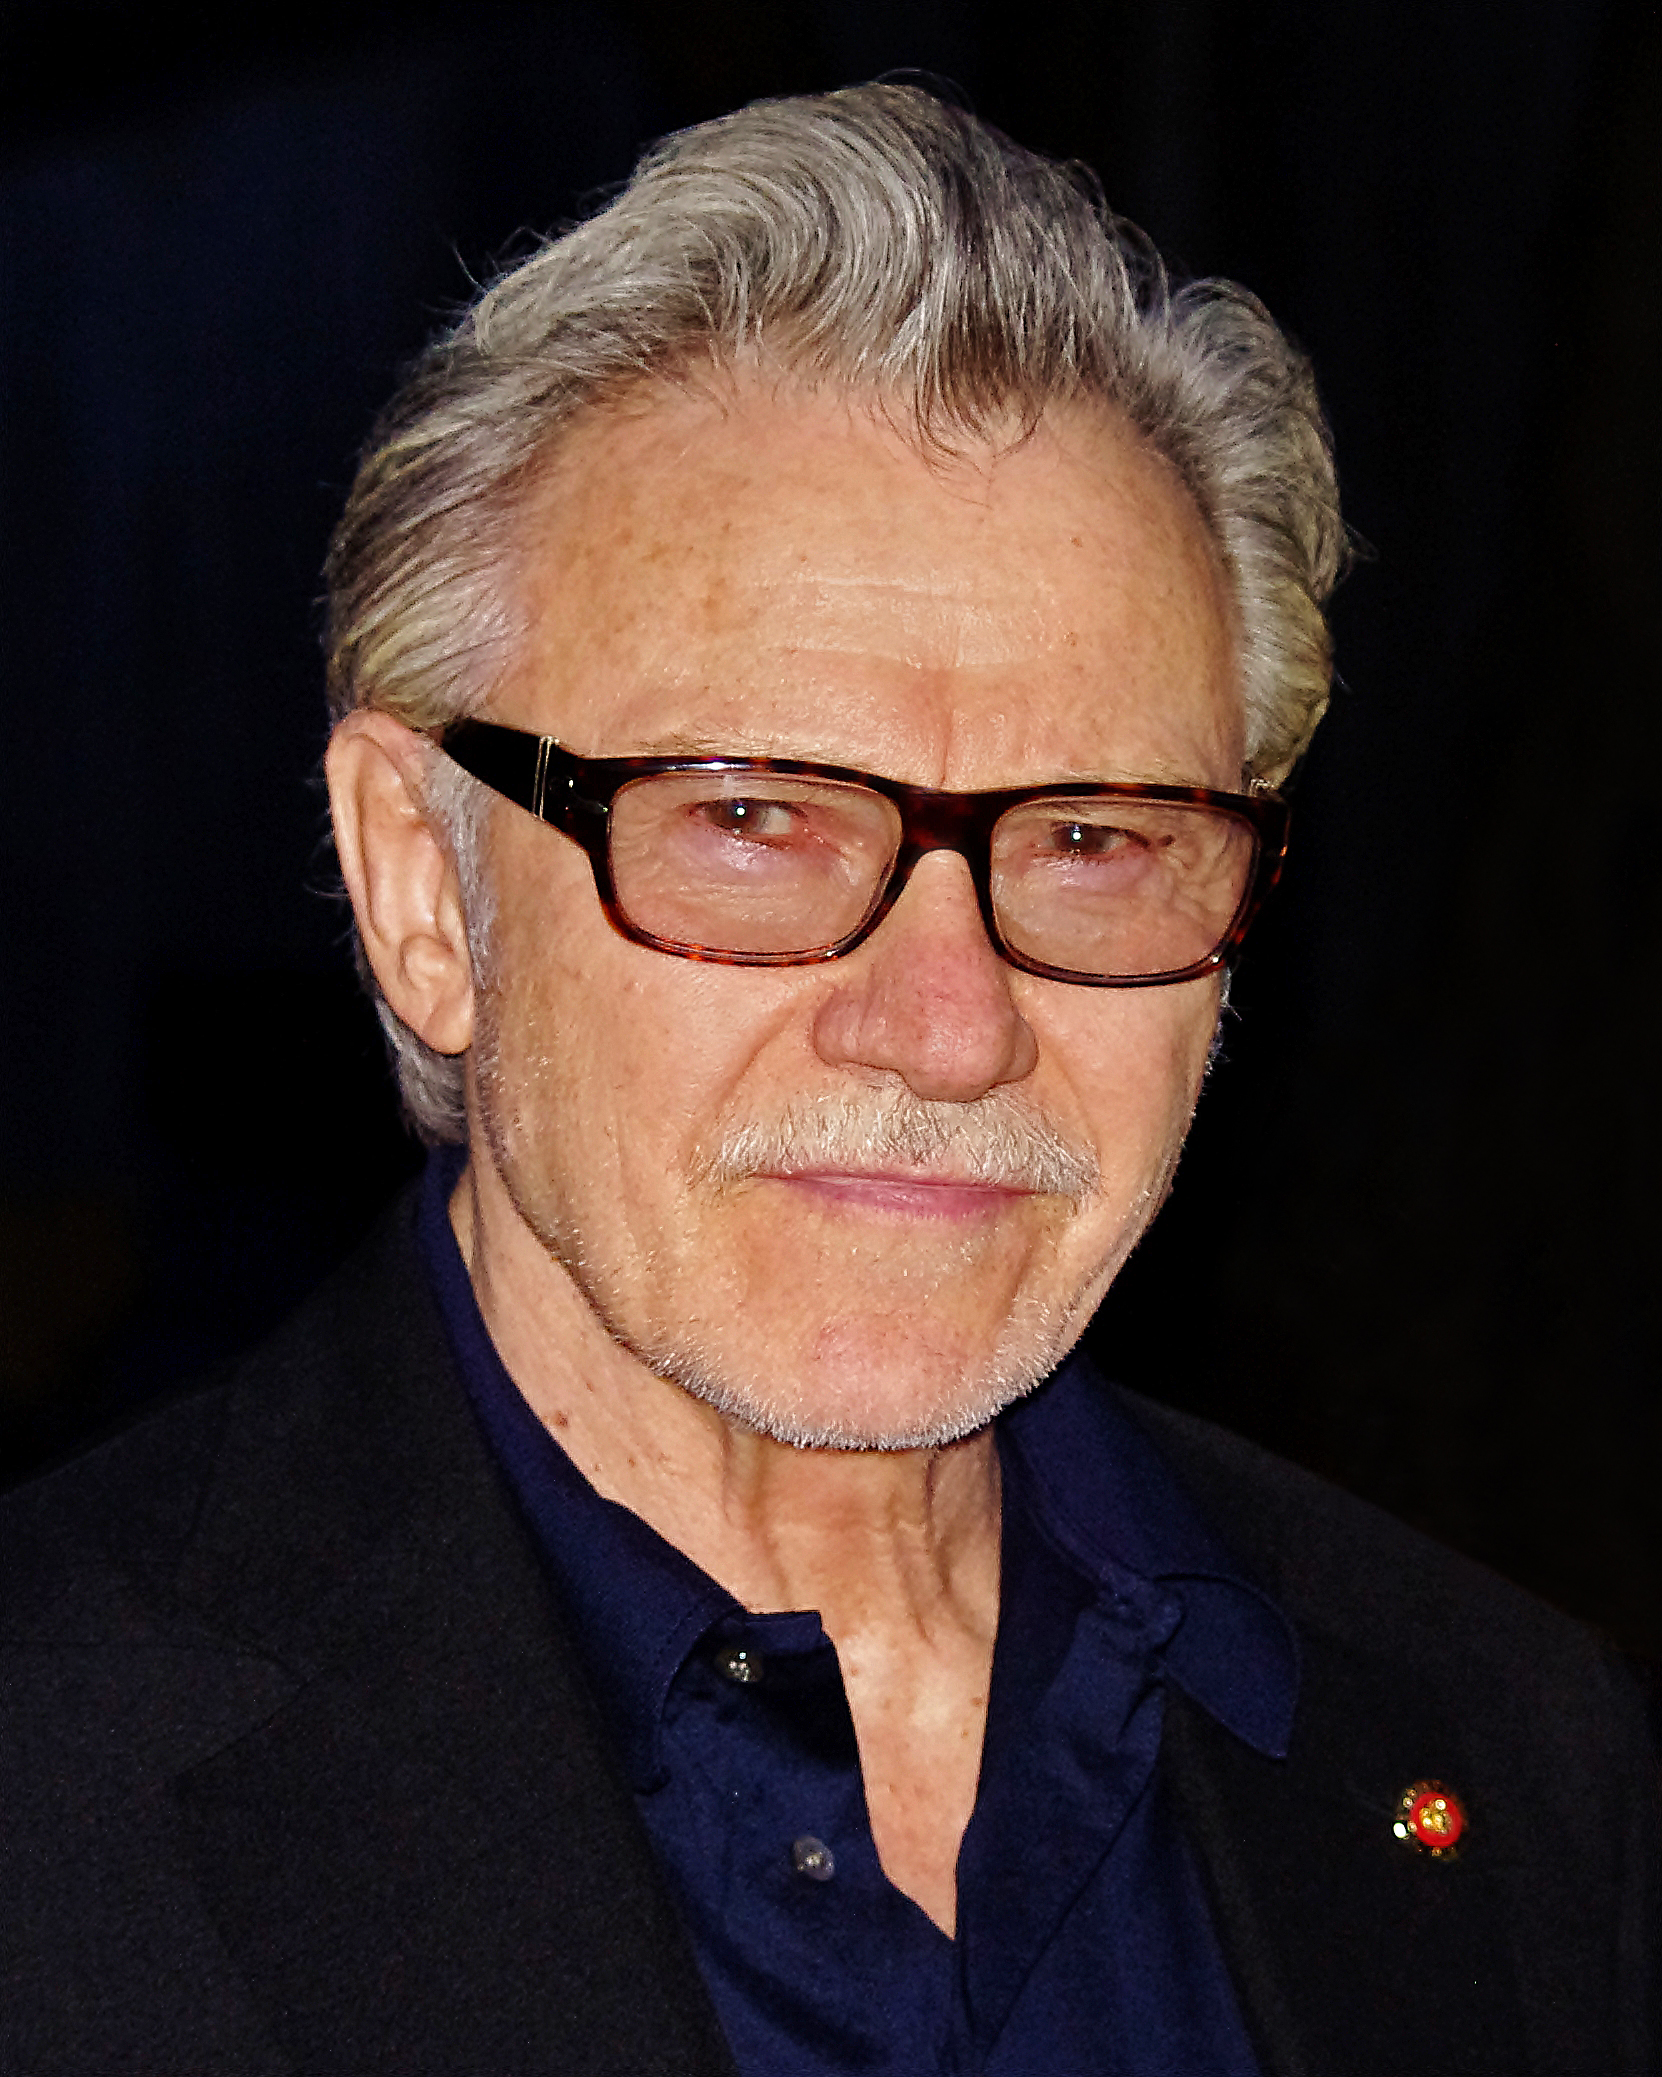 The 79-year old son of father Harry Keitel and mother Miriam Keitel Harvey Keitel in 2018 photo. Harvey Keitel earned a  million dollar salary - leaving the net worth at 45 million in 2018